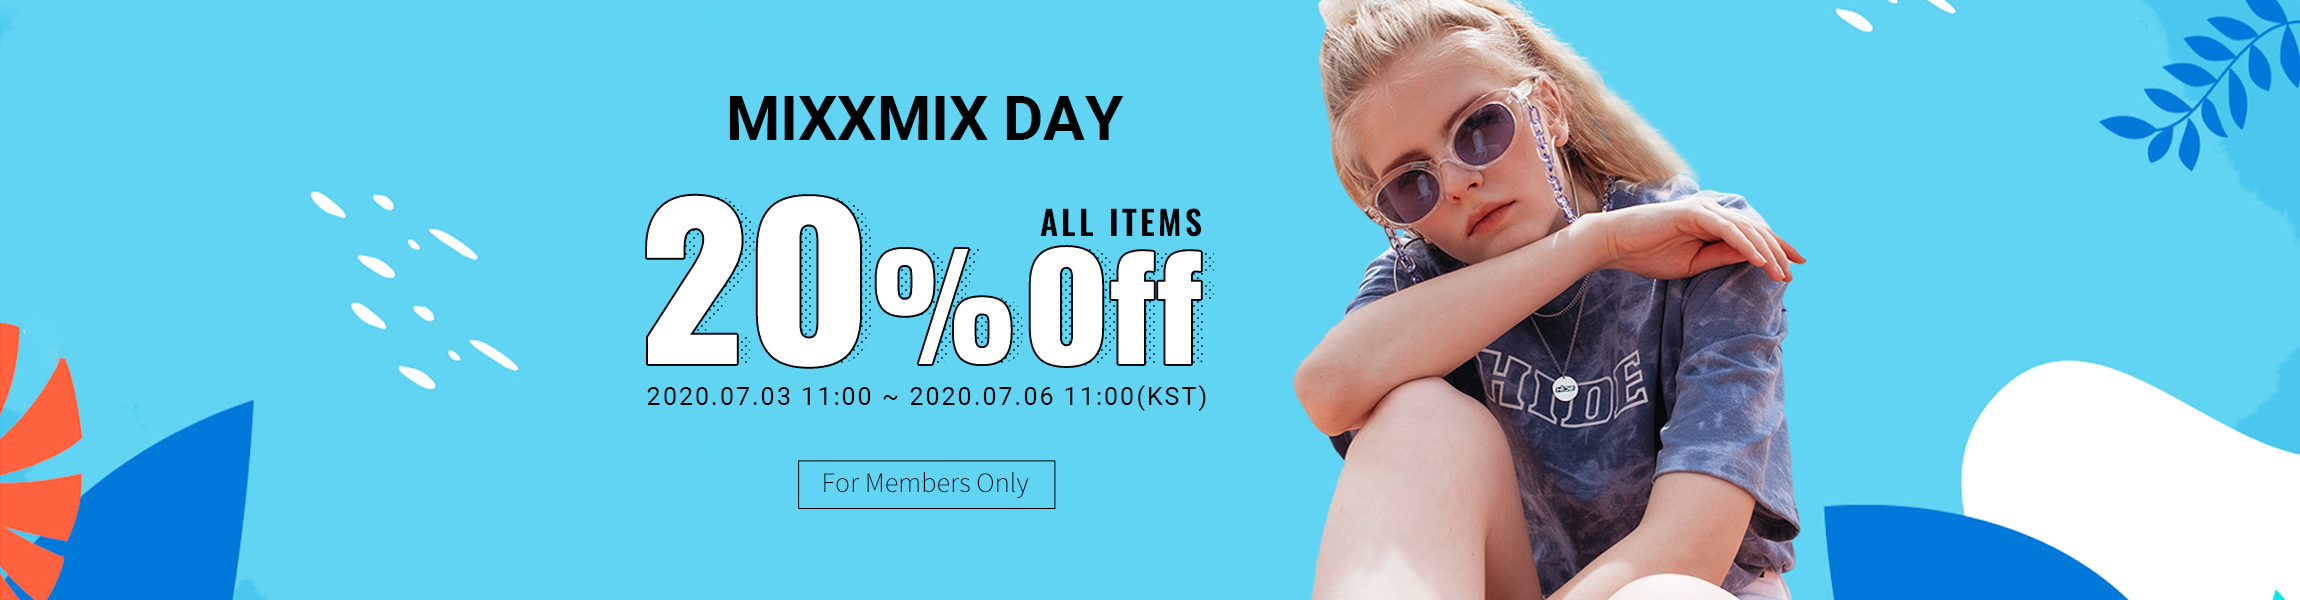 MIXXMIX DAY All items 20%OFF